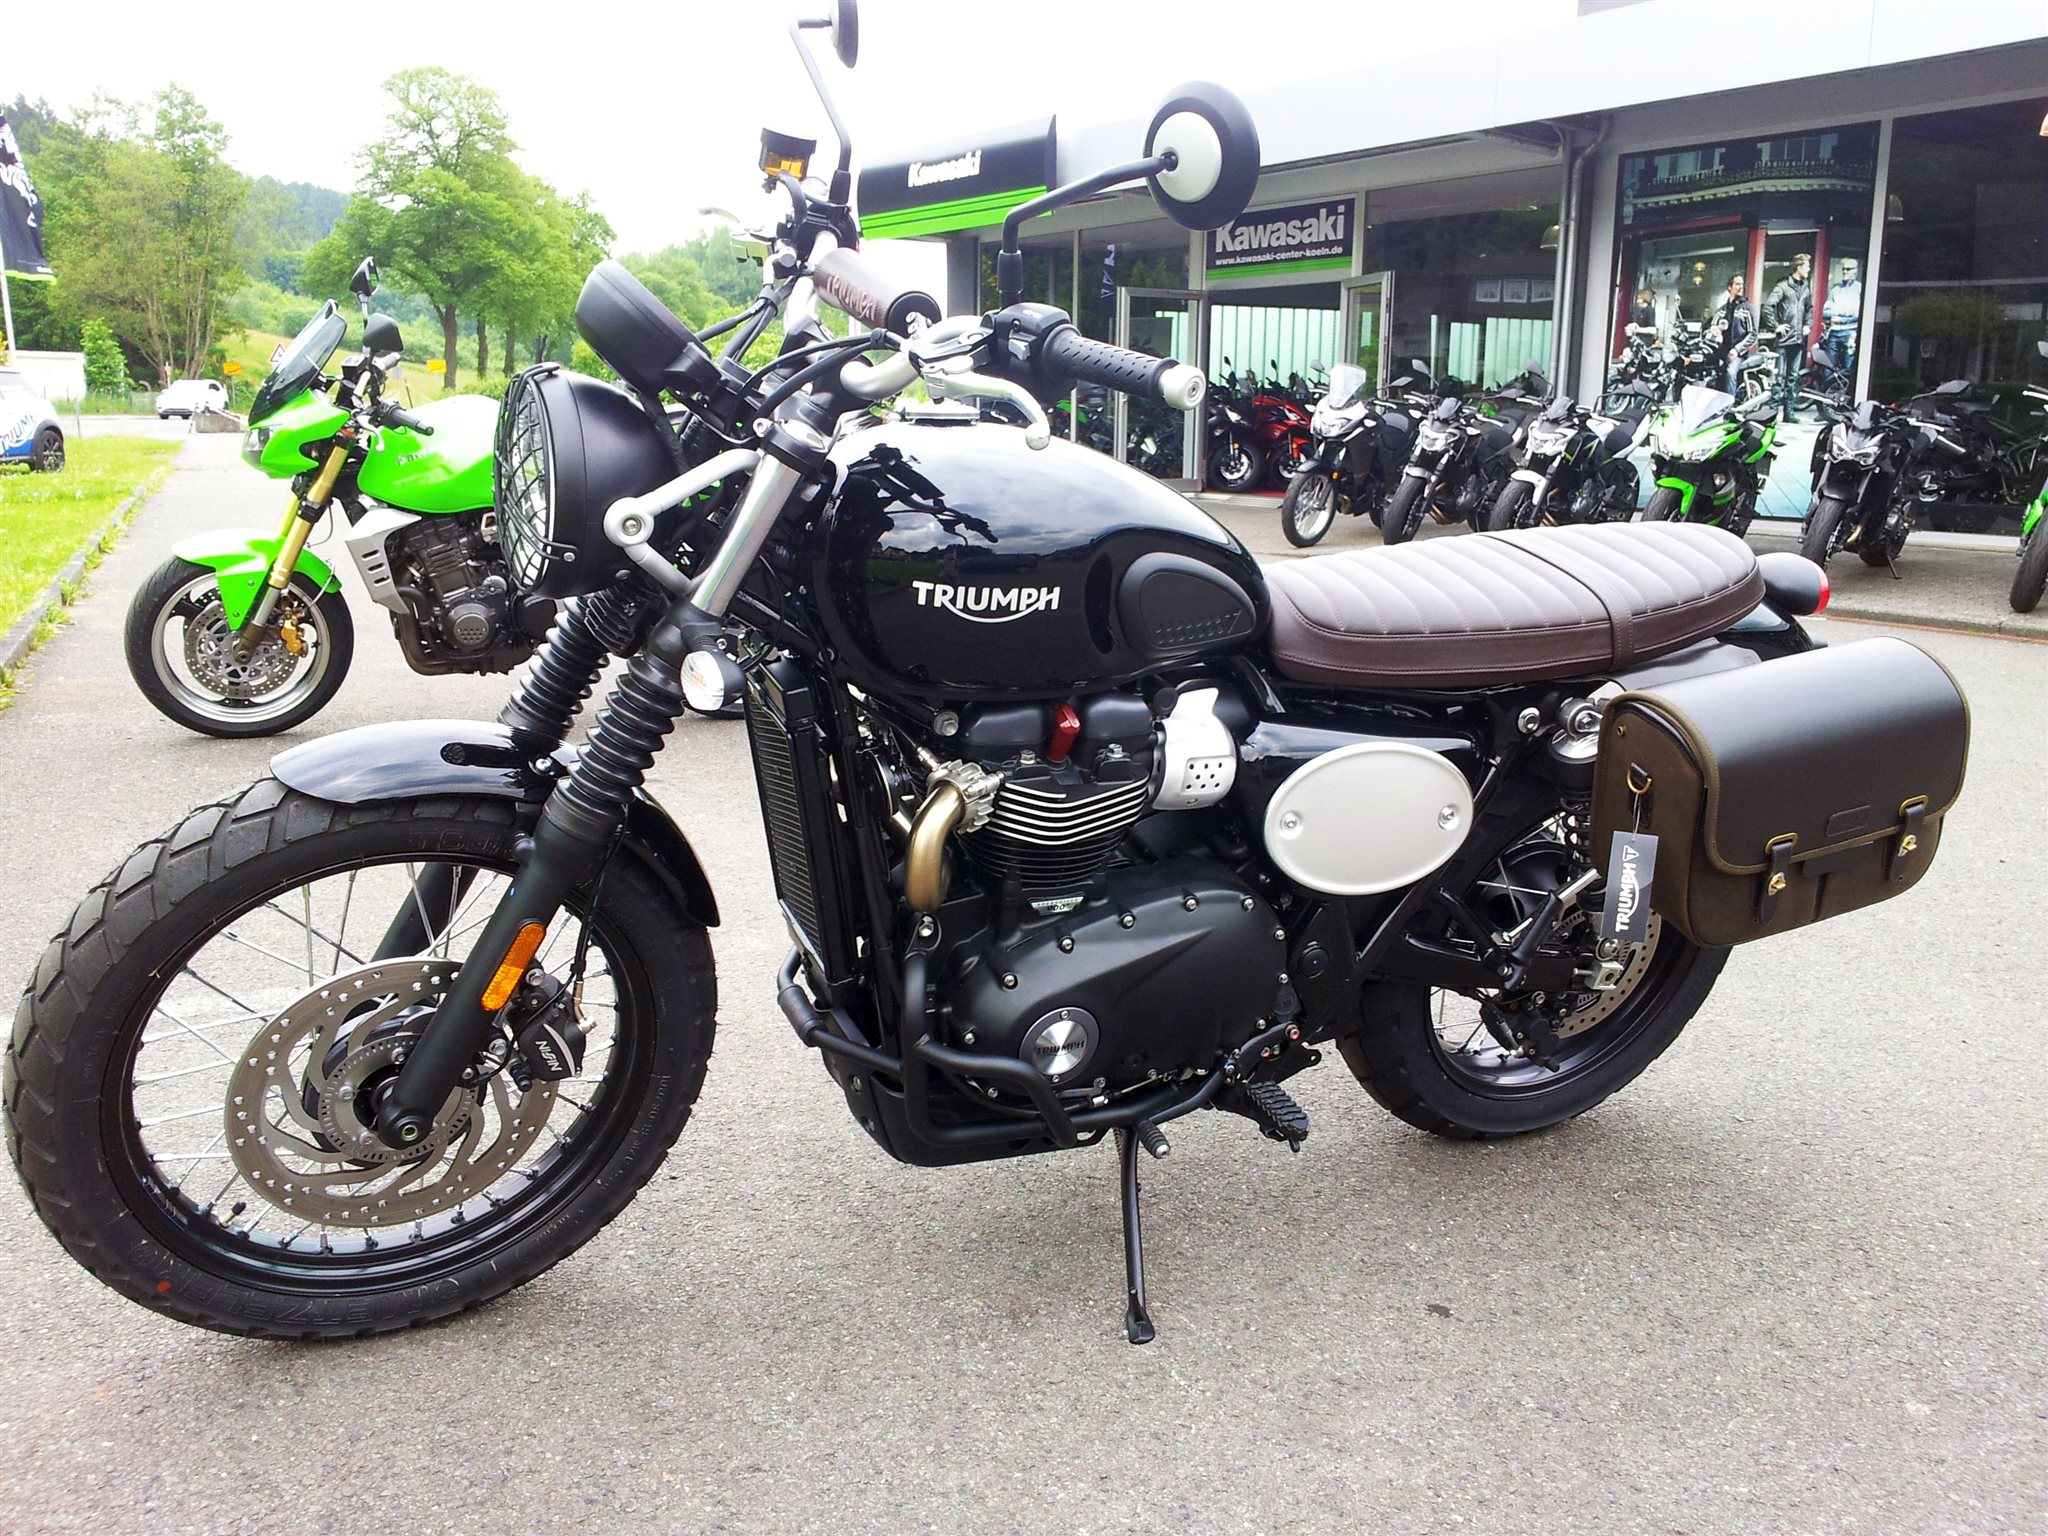 umgebautes motorrad triumph street scrambler von. Black Bedroom Furniture Sets. Home Design Ideas